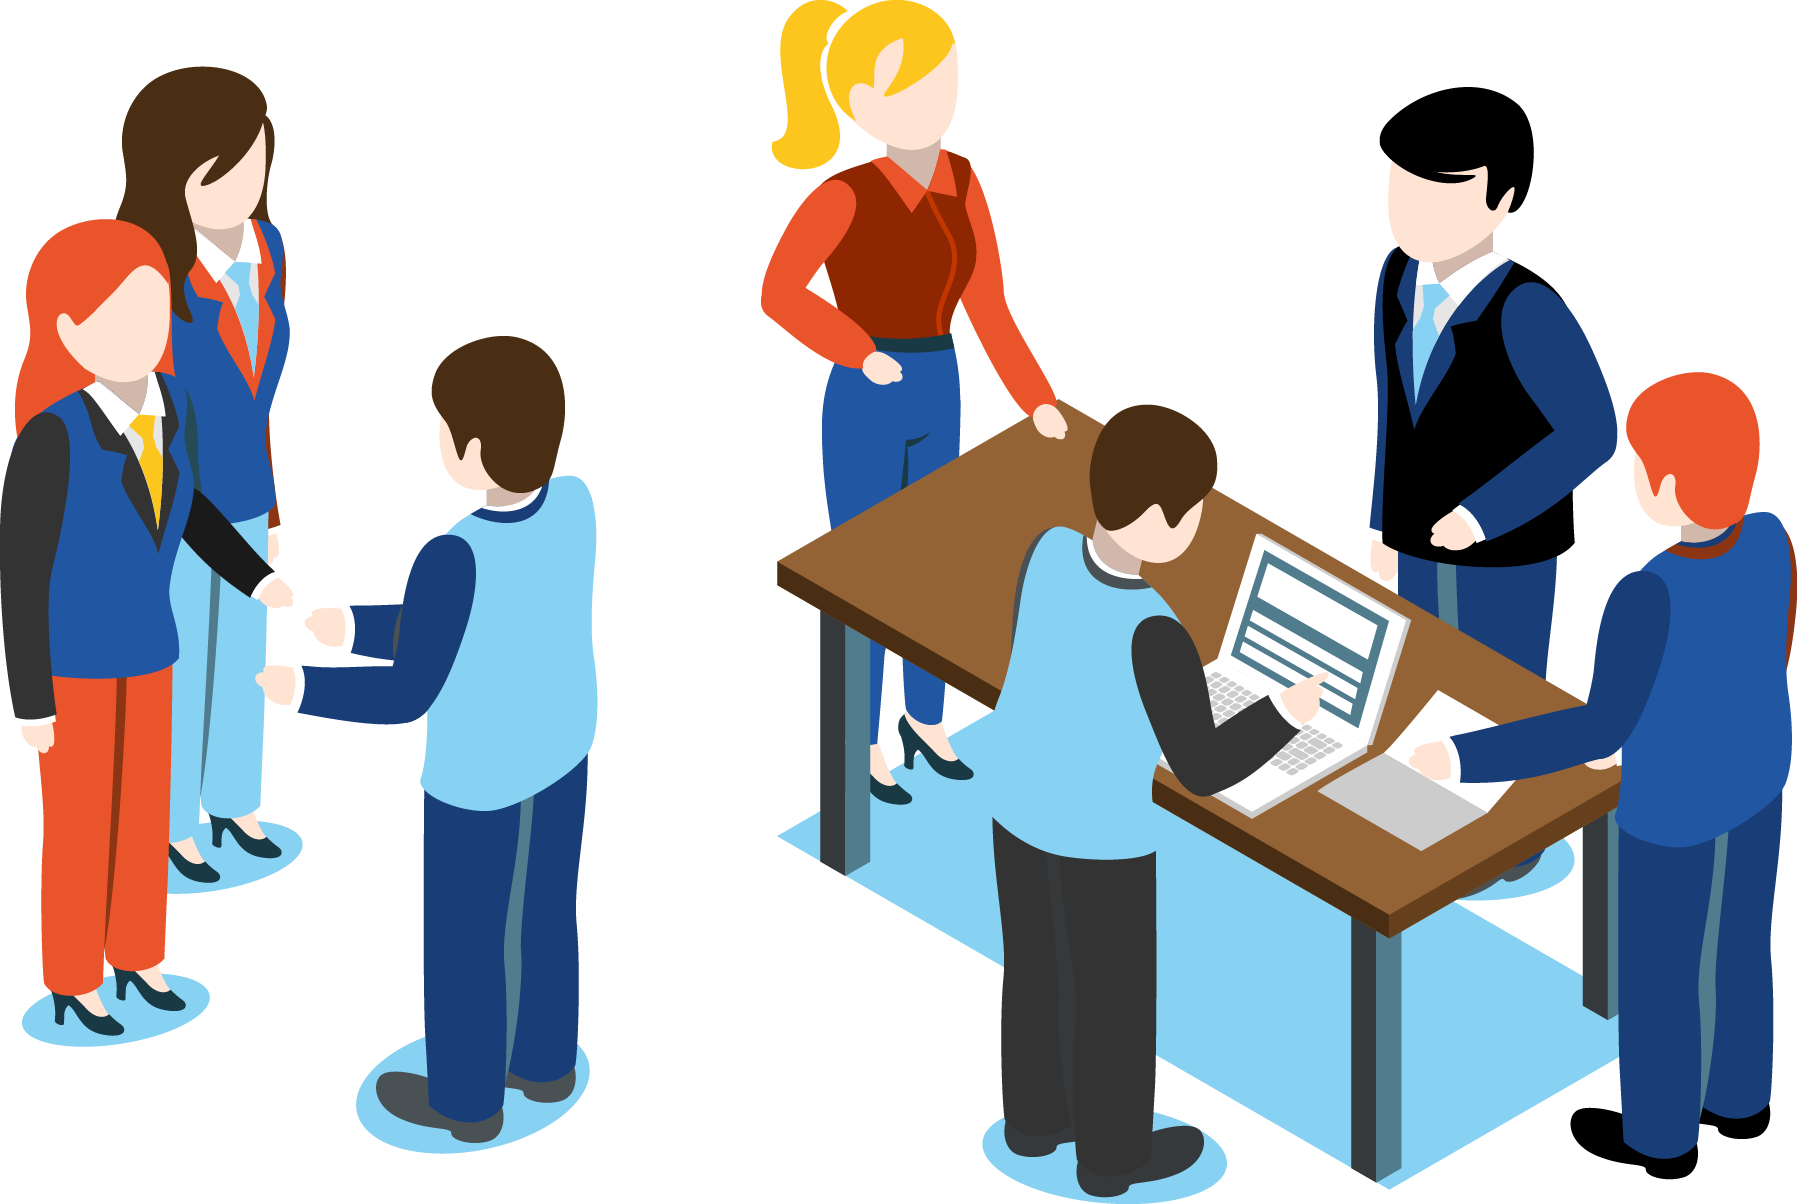 Collaboration clipart project overview. Clickonsite telecom infrastructure and